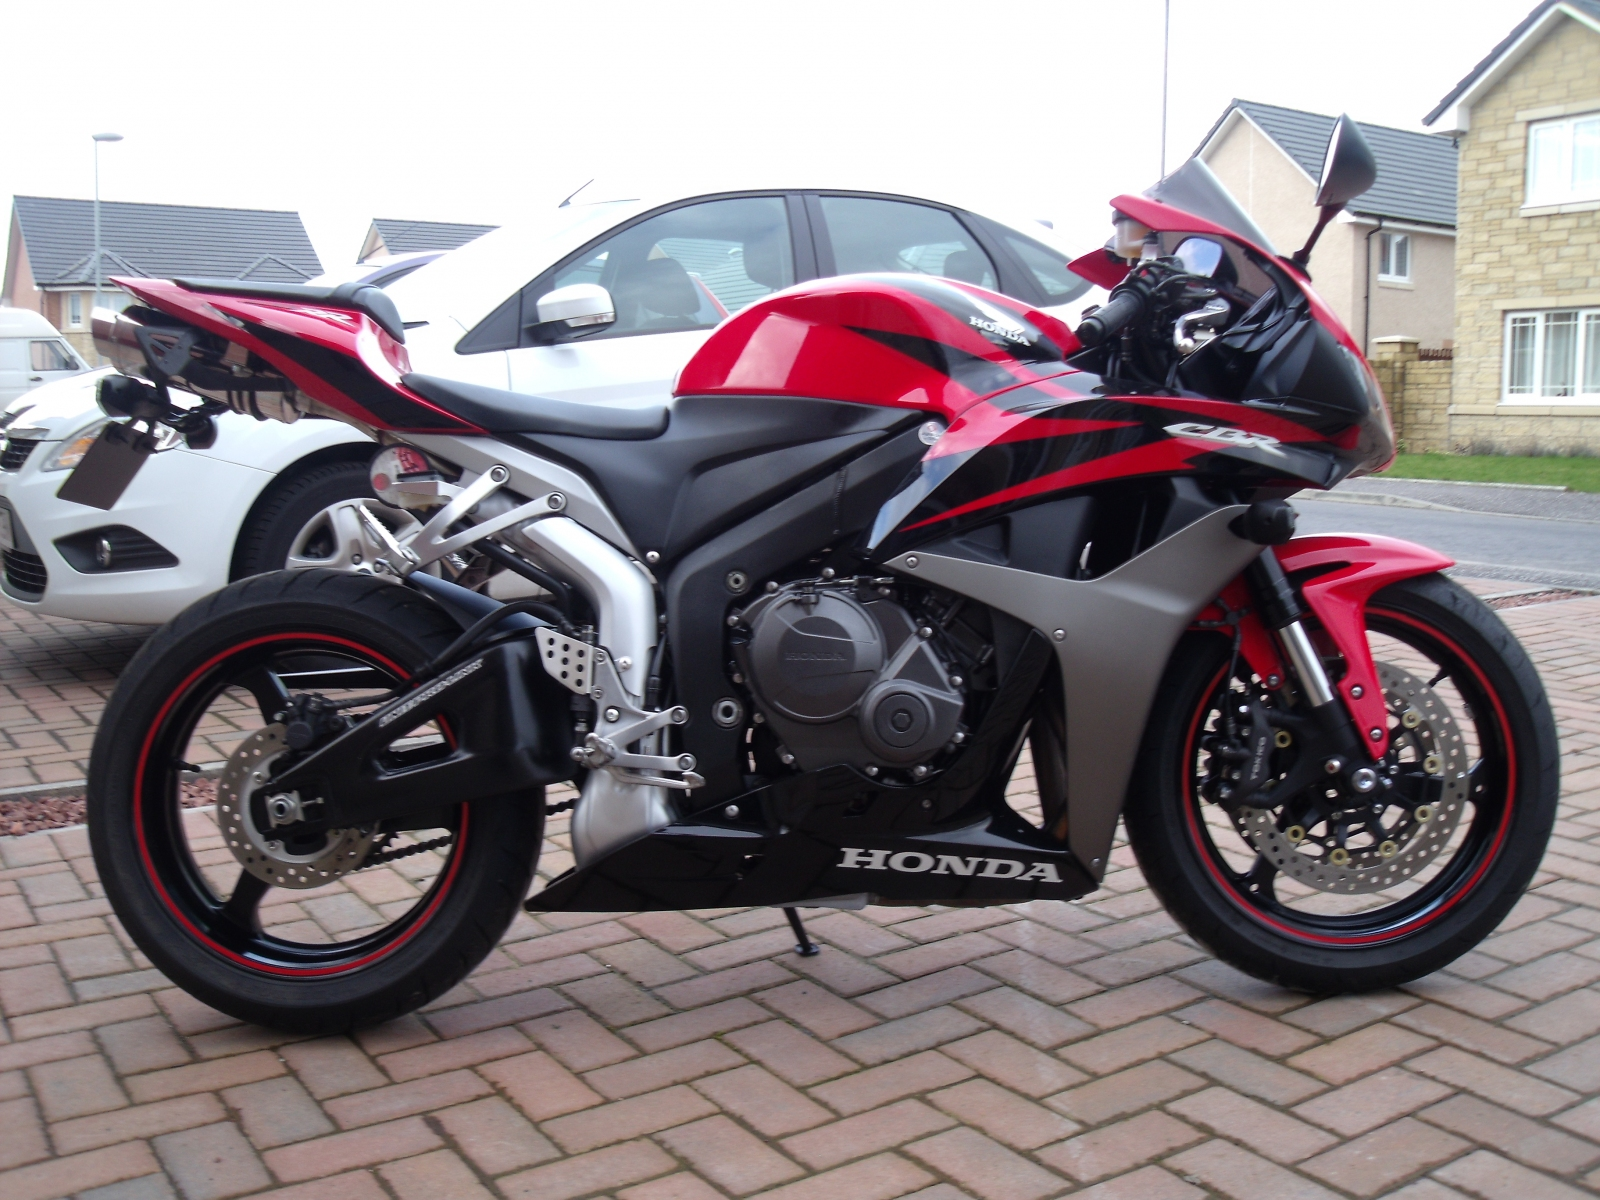 """Honda CBR600RR 2007-2008<p>A16 Road Legal Stainless Exhaust with Polished Slashcut Outlet</p><br/><br/><a href=""""https://a16roadnracesupplies.co.uk/product/a16-honda-exhausts/"""">Buy now!</a>"""